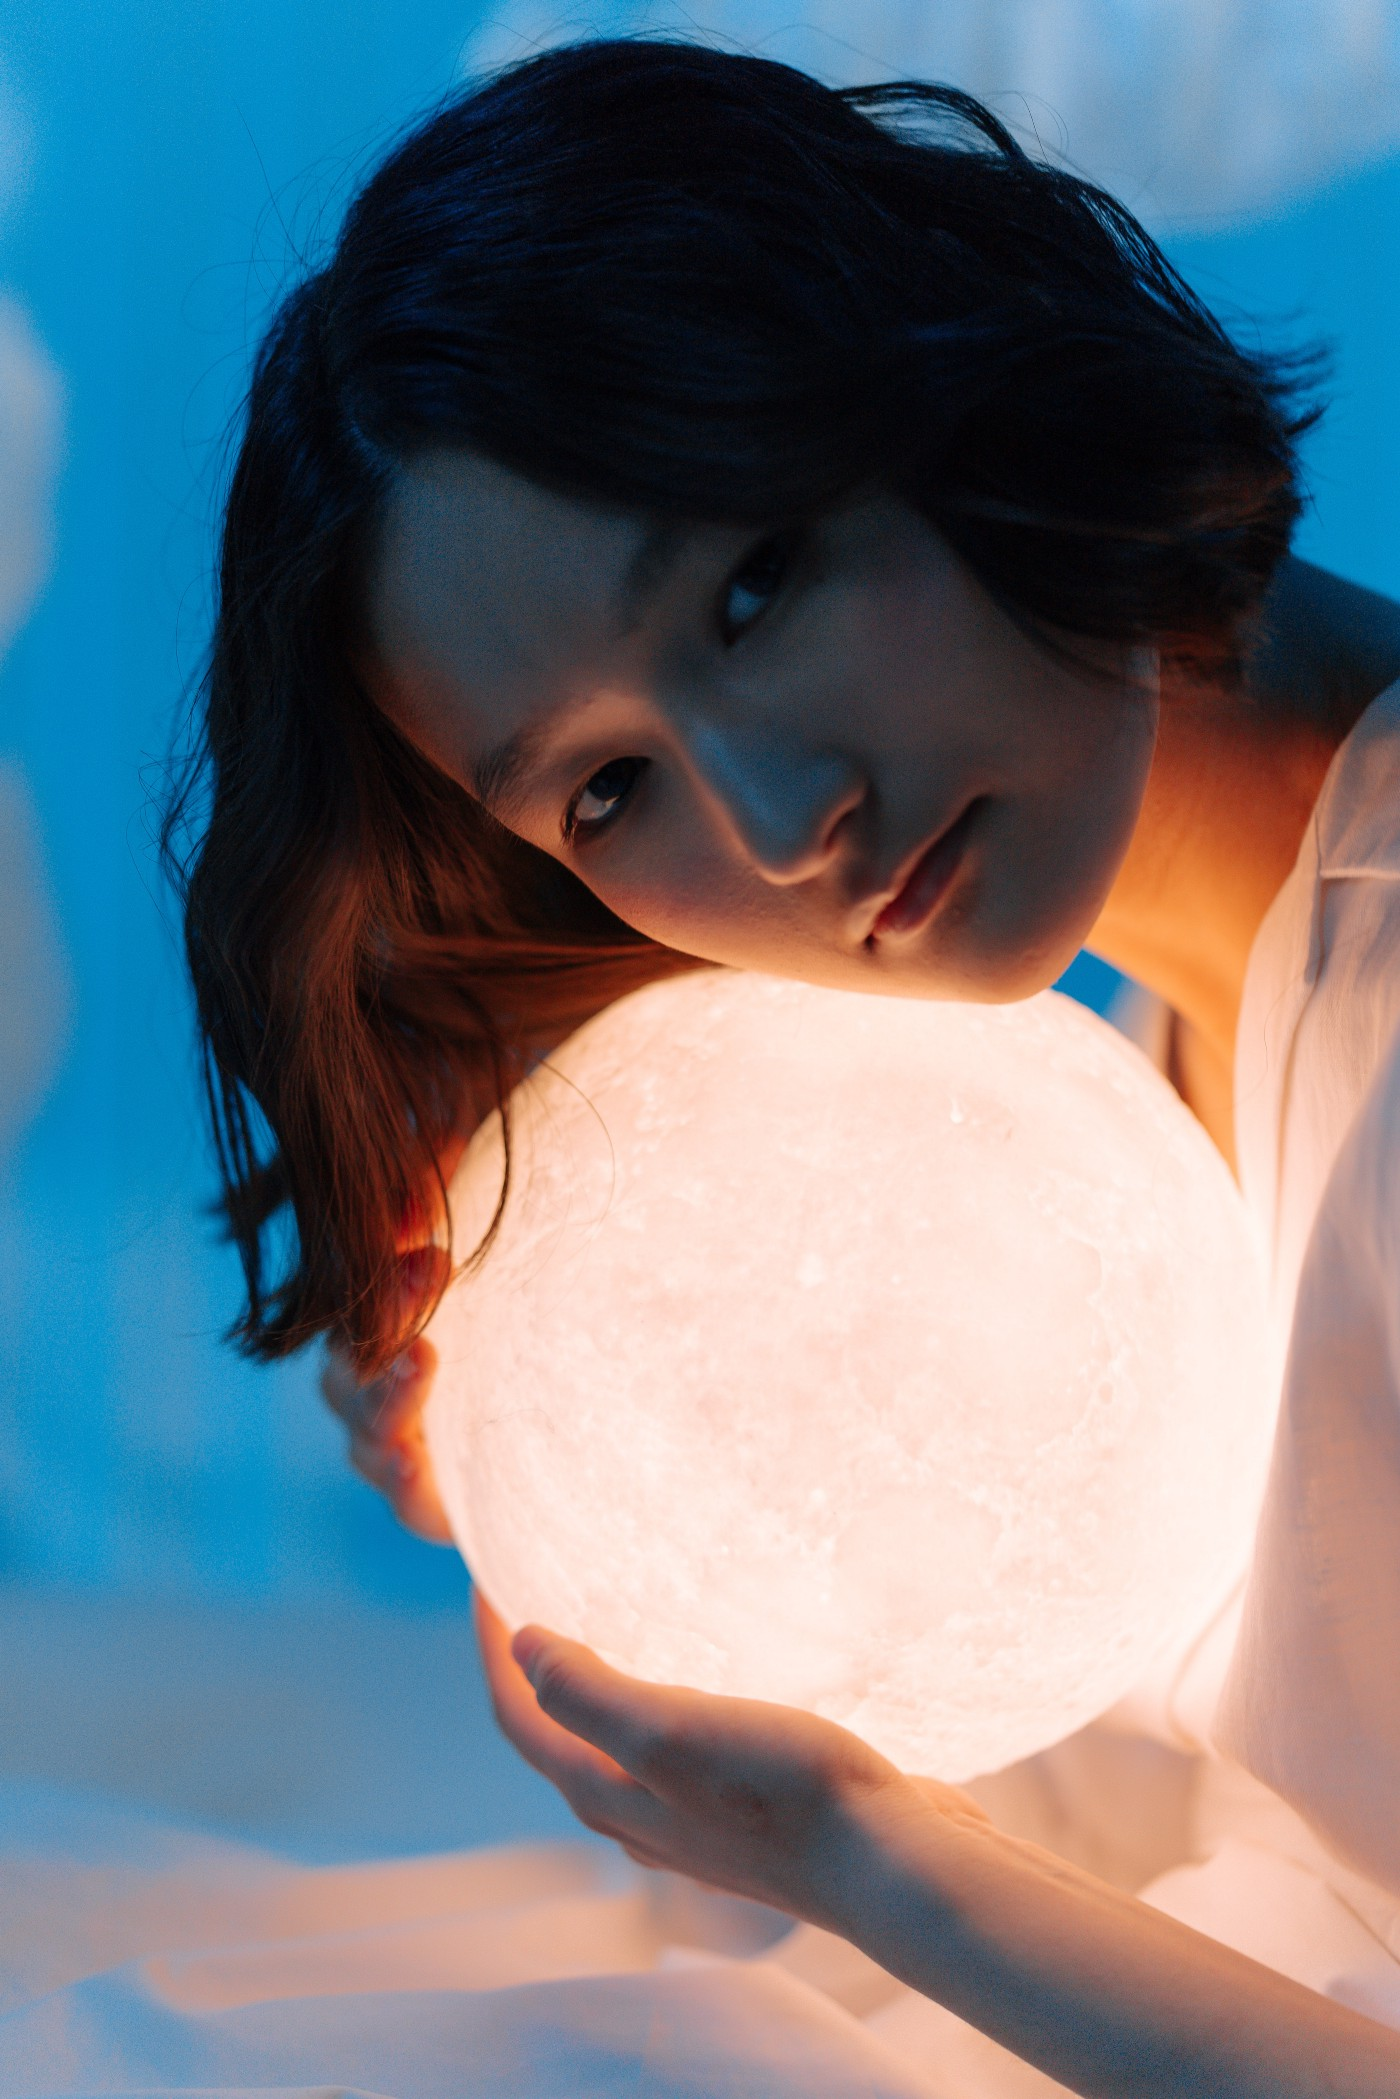 A woman holds a glowing orb under her chin. Moon glow. Calm, reflective feeling.